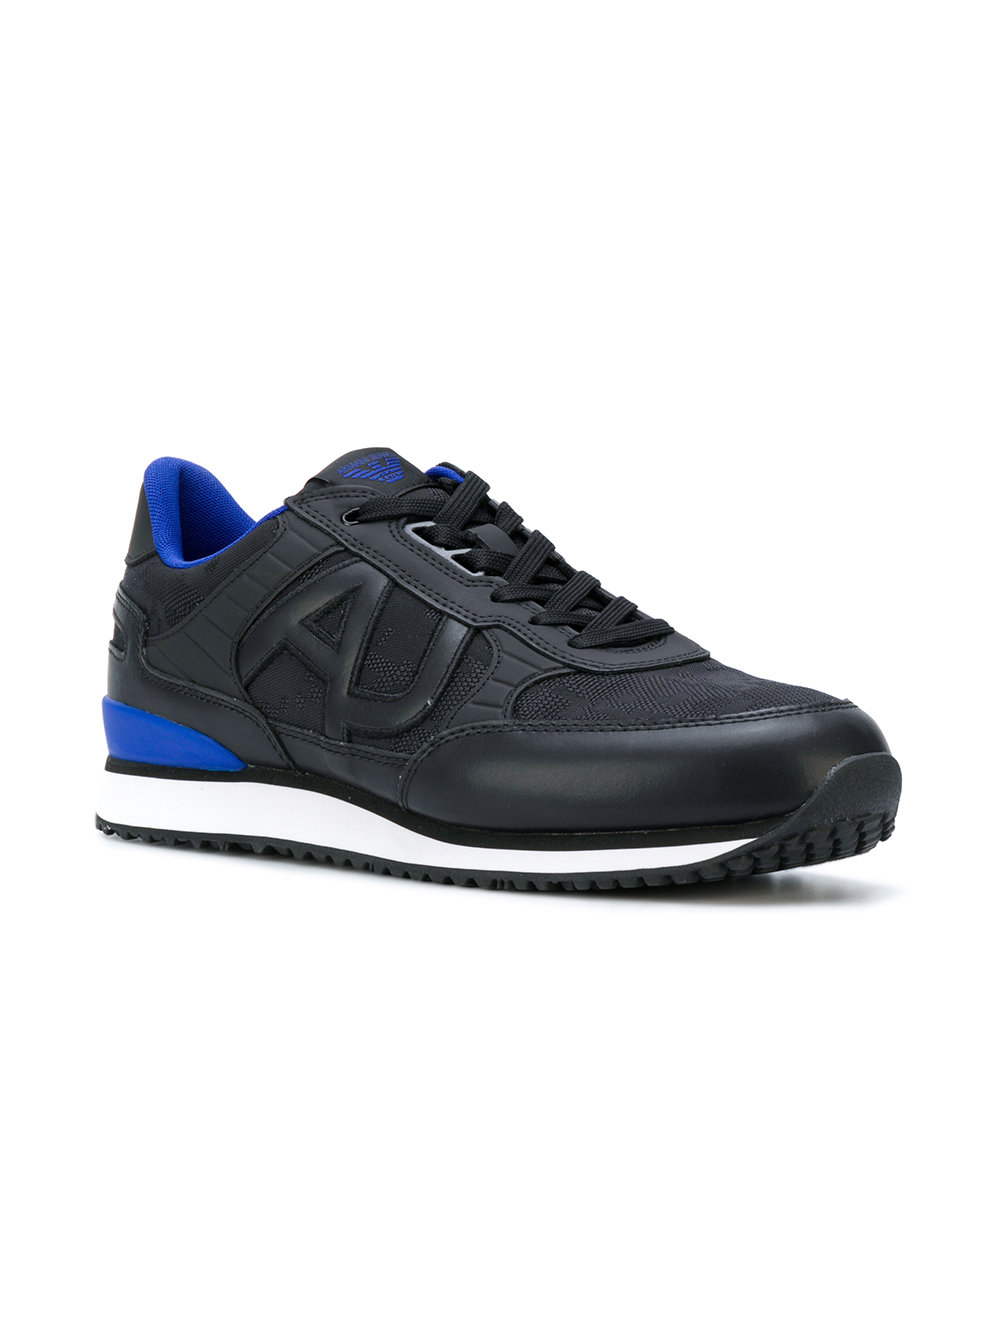 1ad32a86423 chaussure armani jeans homme